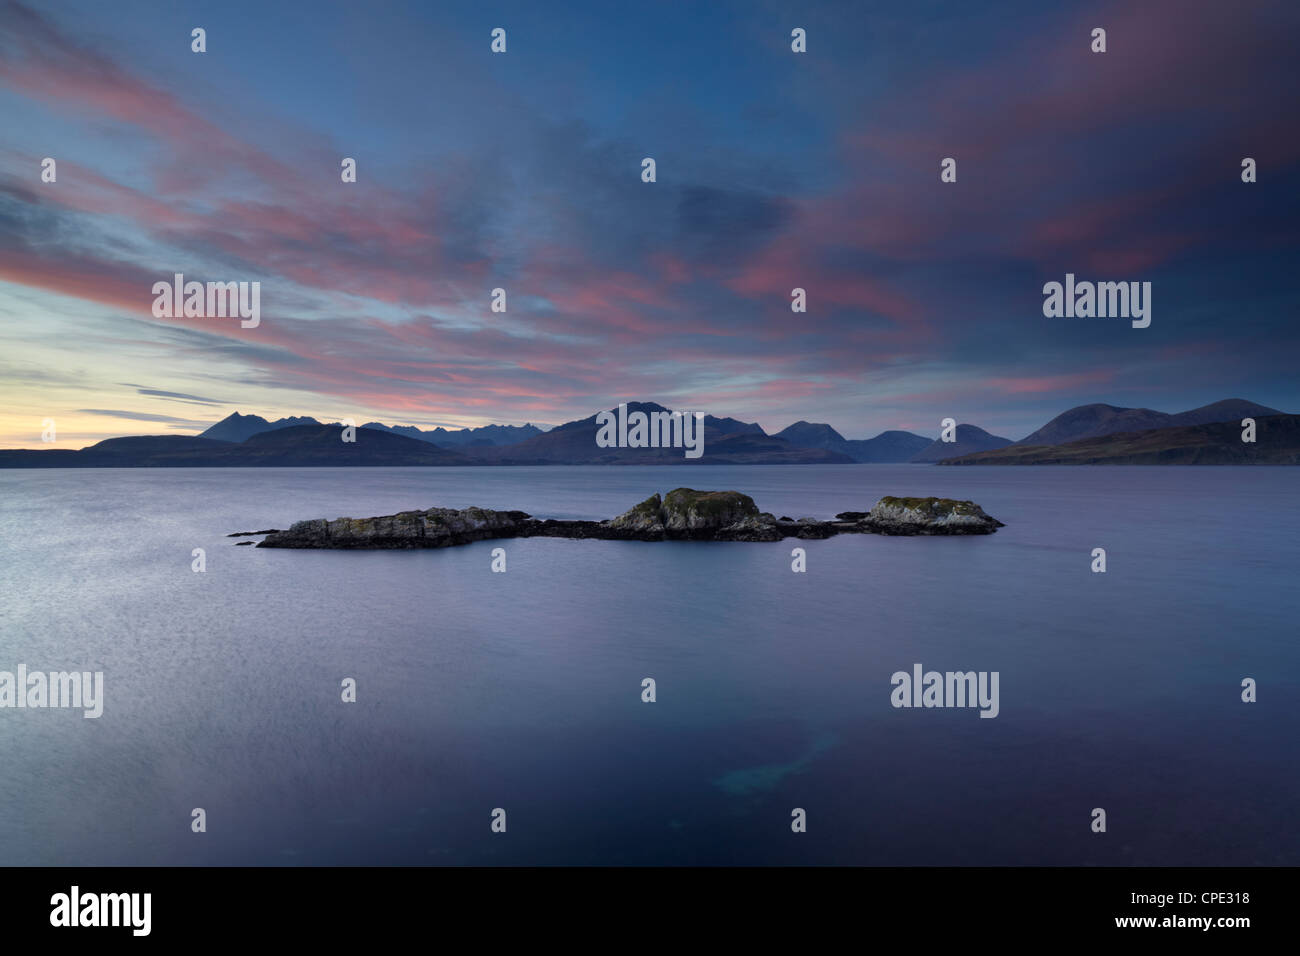 A view towards the Cuillin Hills from the Sleat Peninsula at Tokavaig, Isle of Skye, Inner Hebrides, Scotland, United - Stock Image